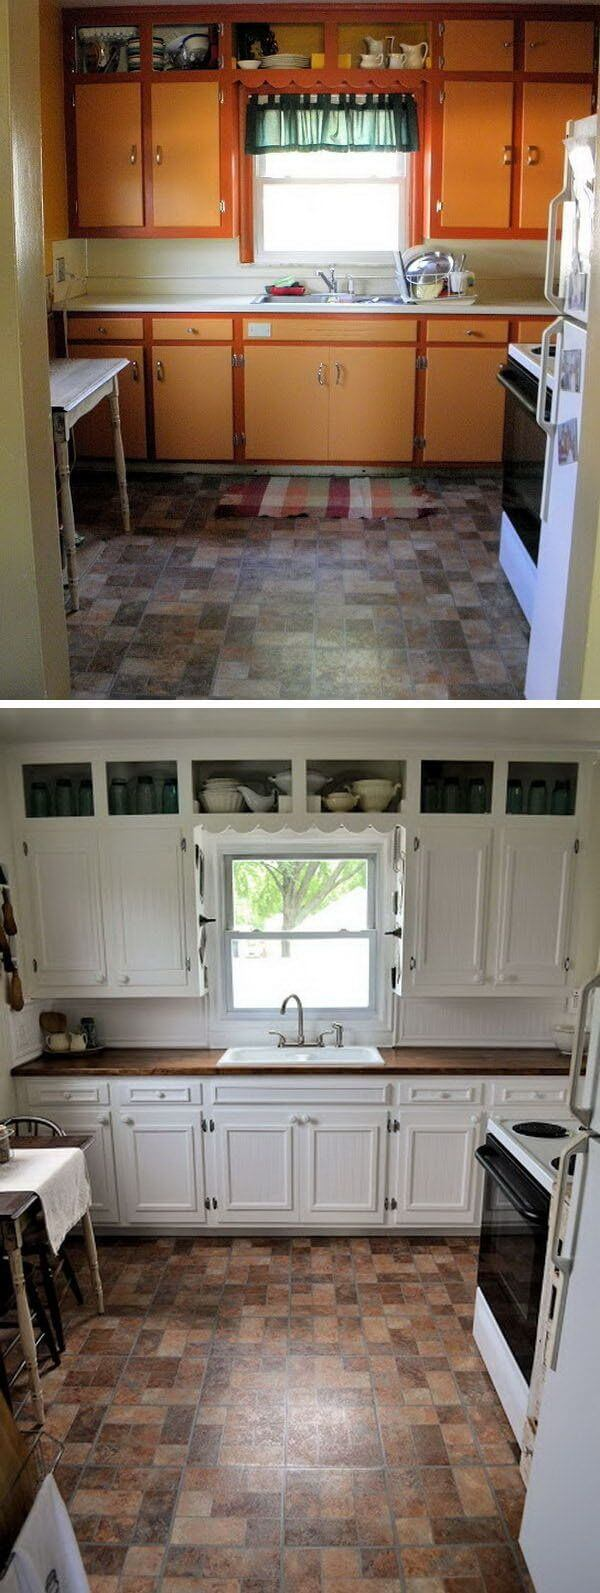 Updated Cabinets Make the Difference